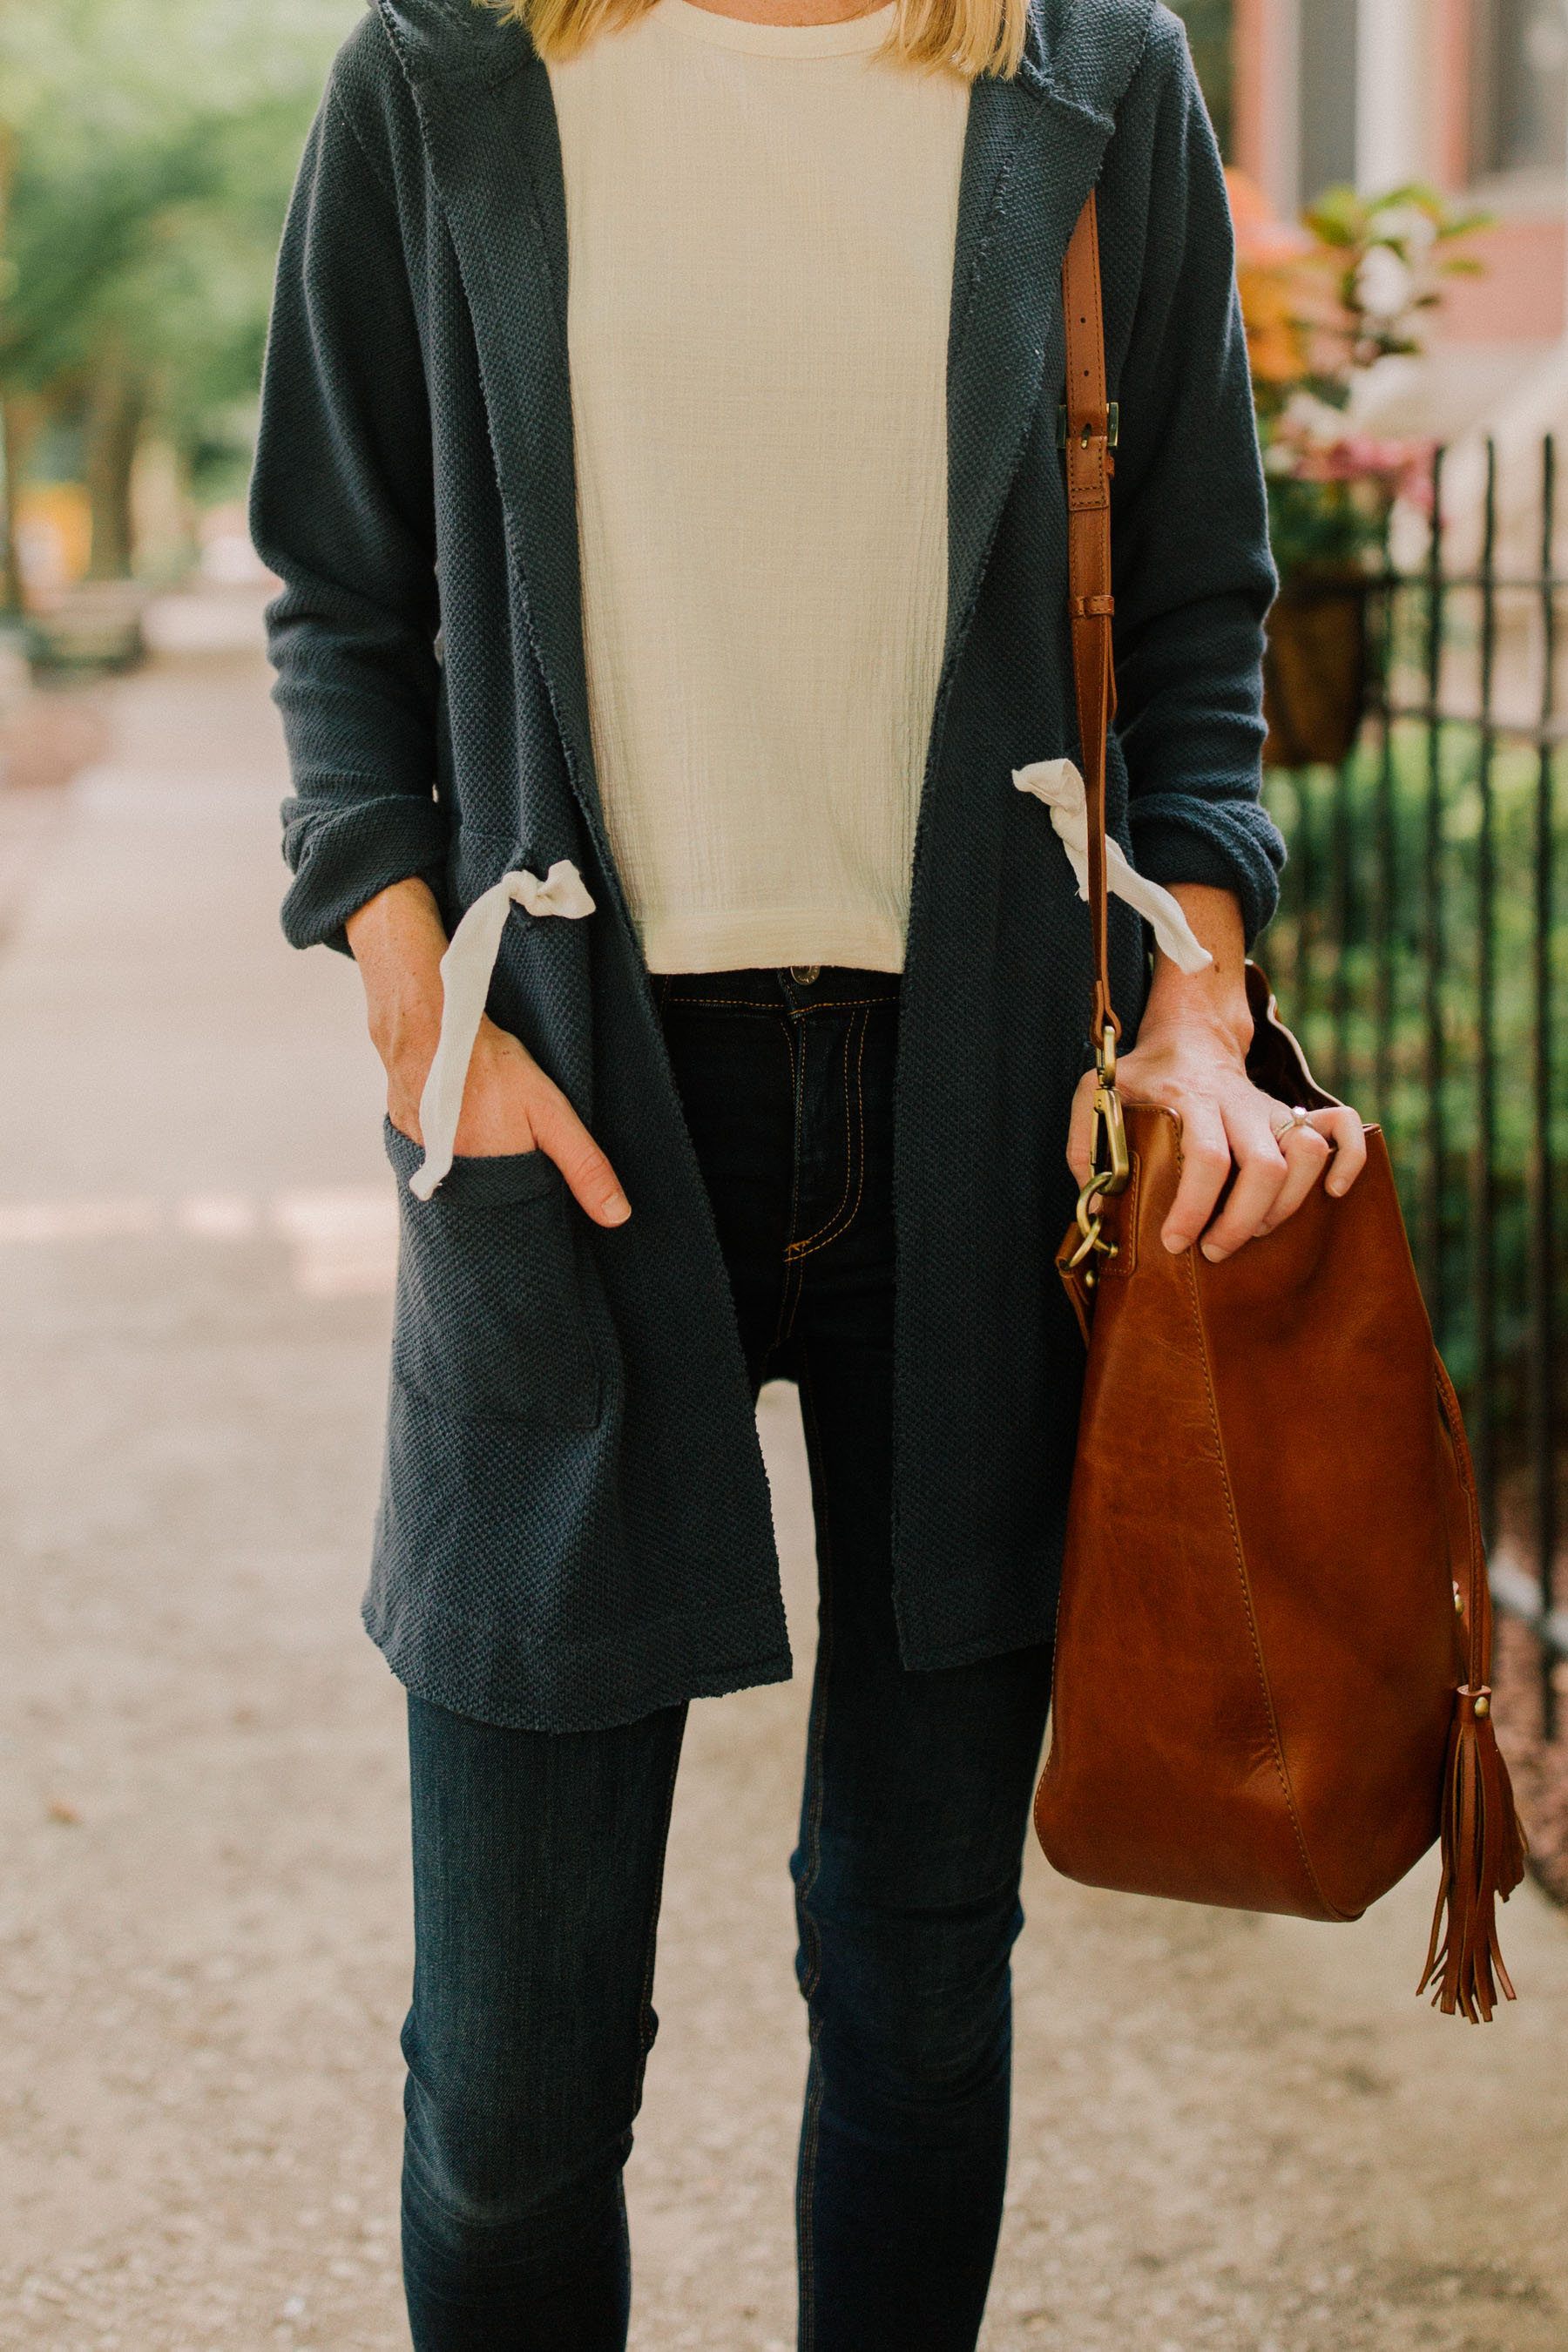 Madewell Tie-Back Top / Rag & Bone Skinny Jeans / Bucket Bag  / Navy Cardigan  / Monica Vinader Bracelet